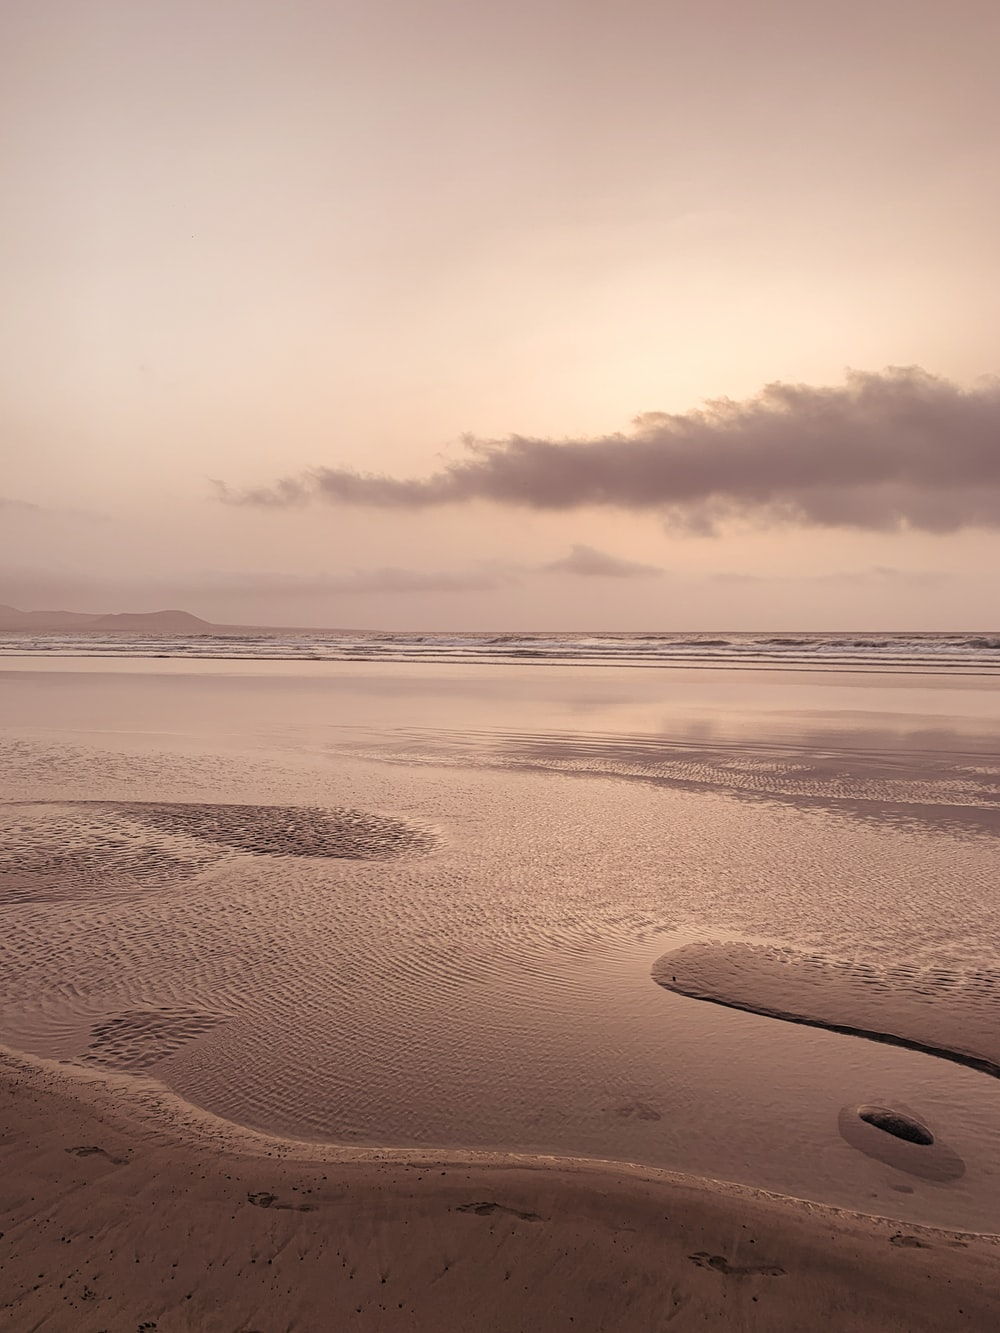 brown sand under cloudy sky during daytime